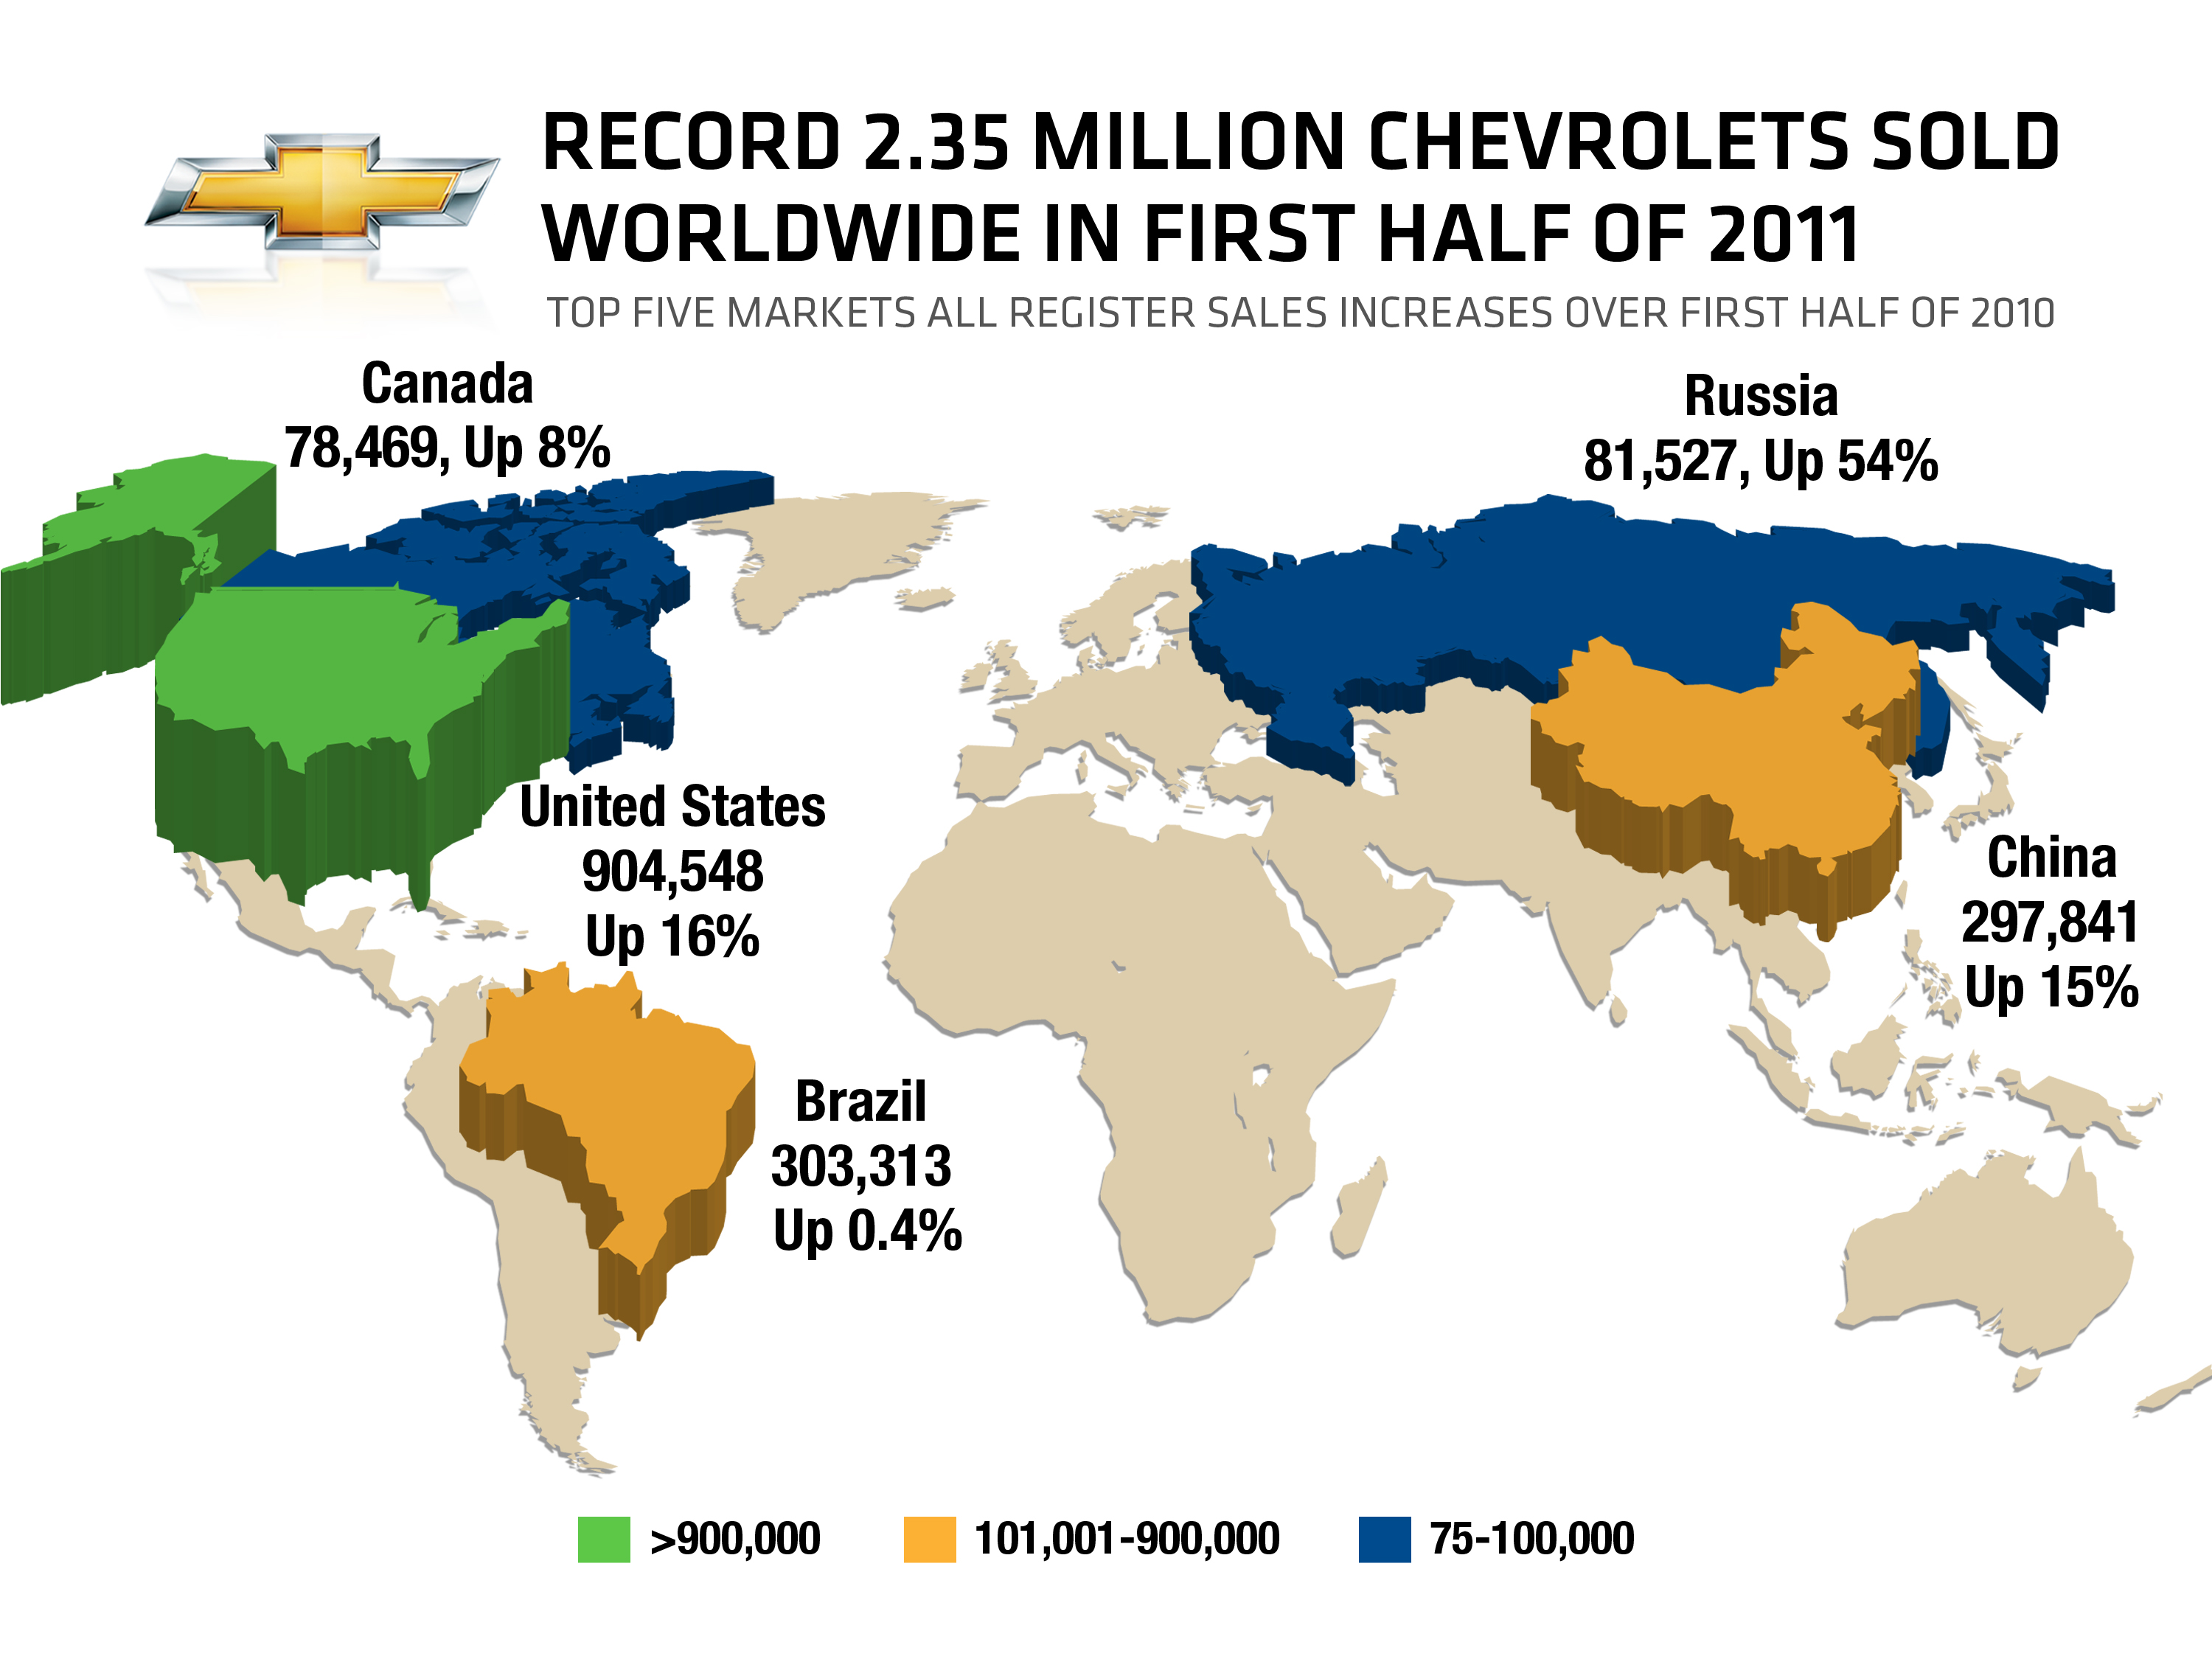 Chevrolet 2.35 Million First-Half Global Sales Sets Record